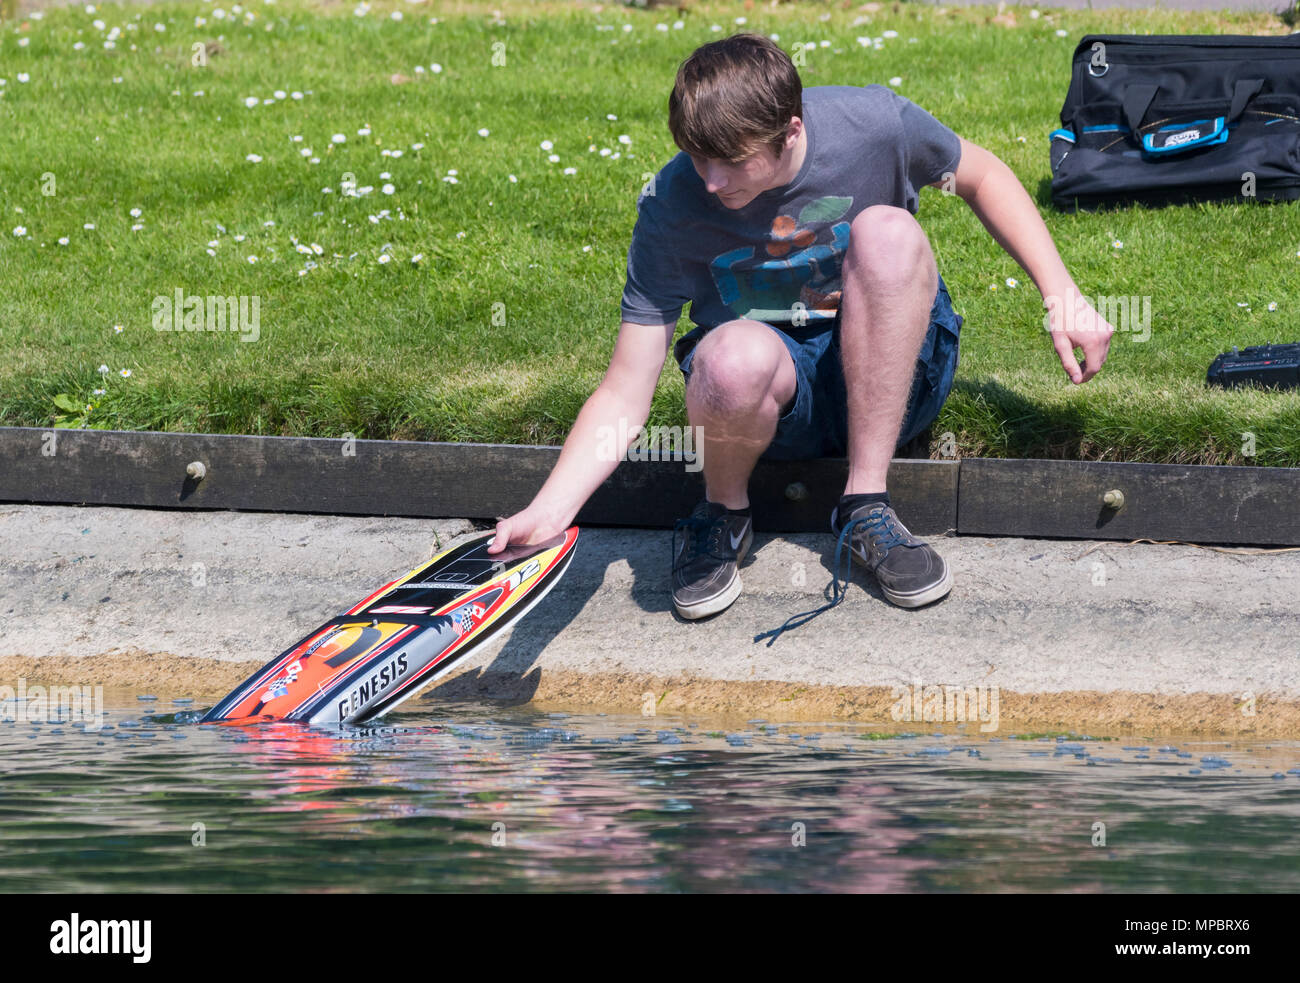 Young man taking a model radio controlled boat out of the water. Remote controlled speedboat. - Stock Image